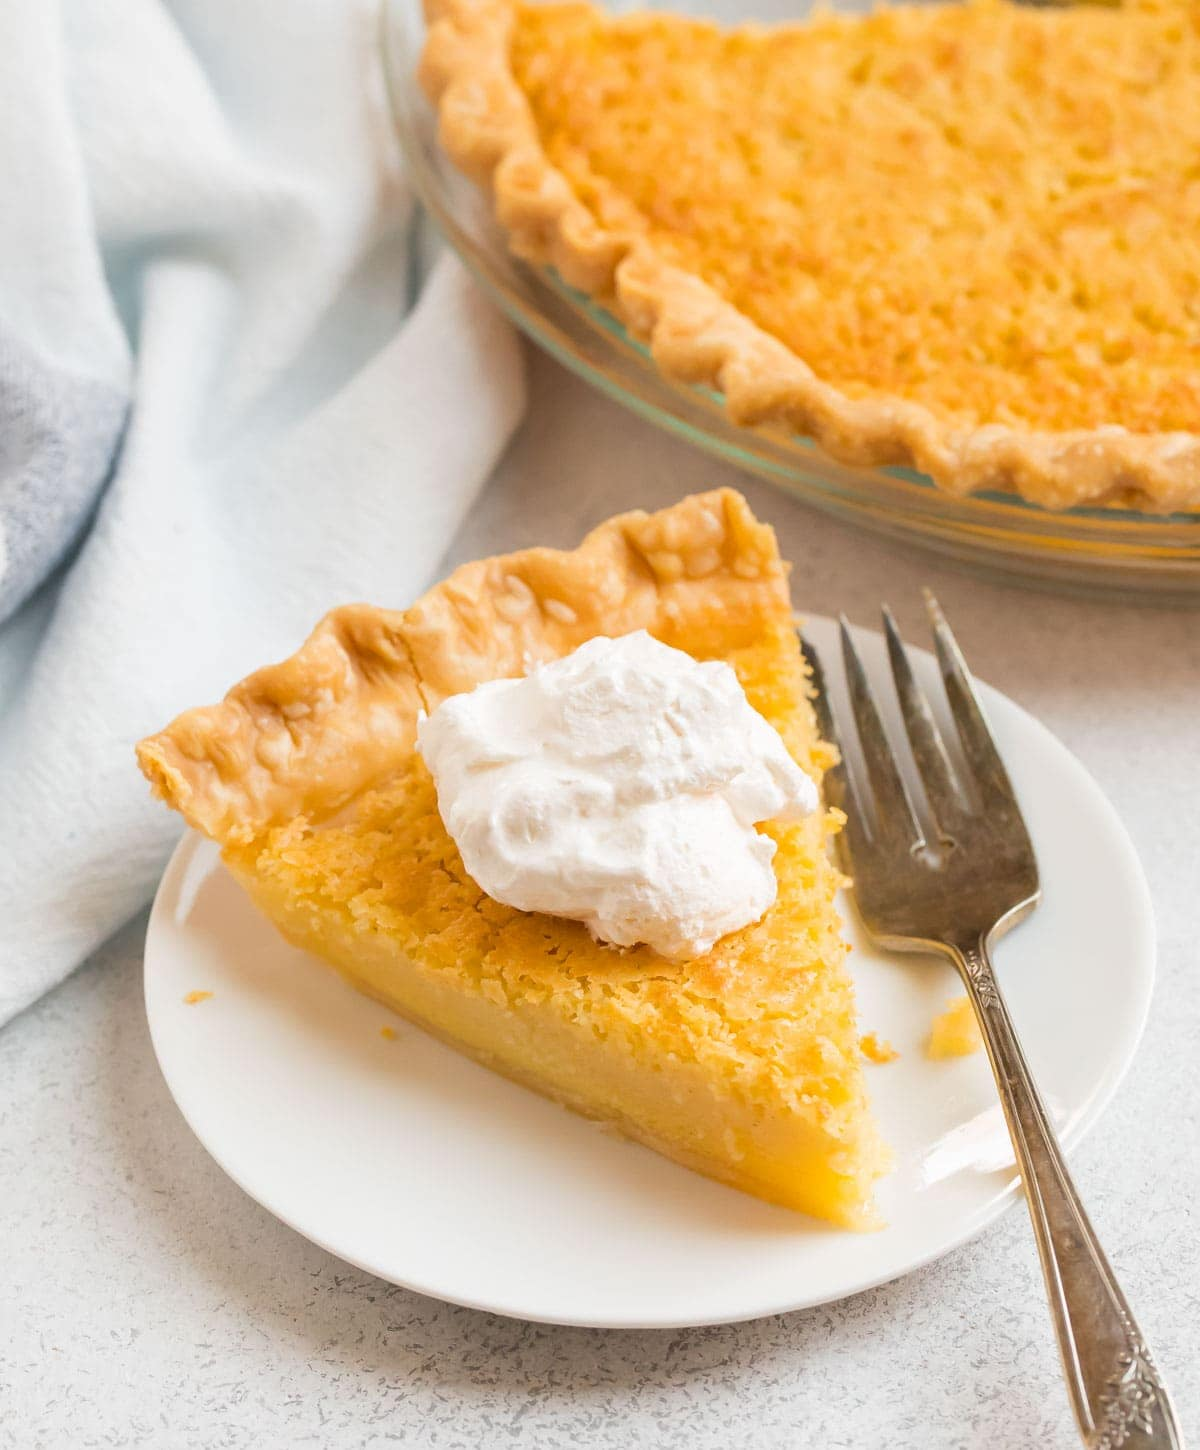 A slice of old fashioned Buttermilk Pie with whipped cream on top